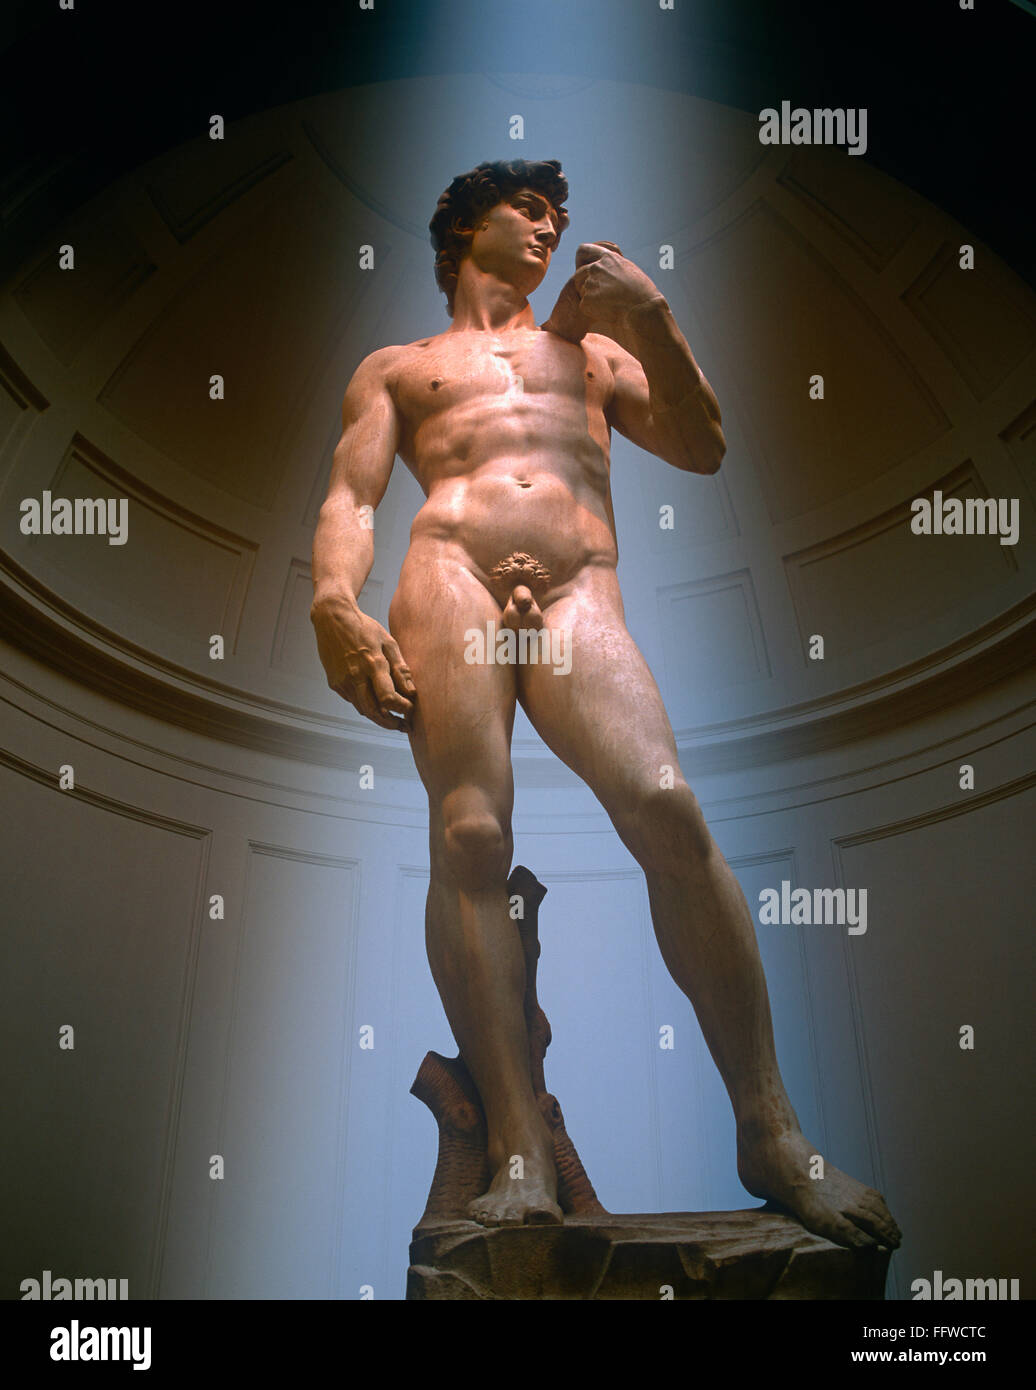 Statue of David by Michelangelo in the Galeria dell Accademia, Florence, Tuscany, Italy - Stock Image